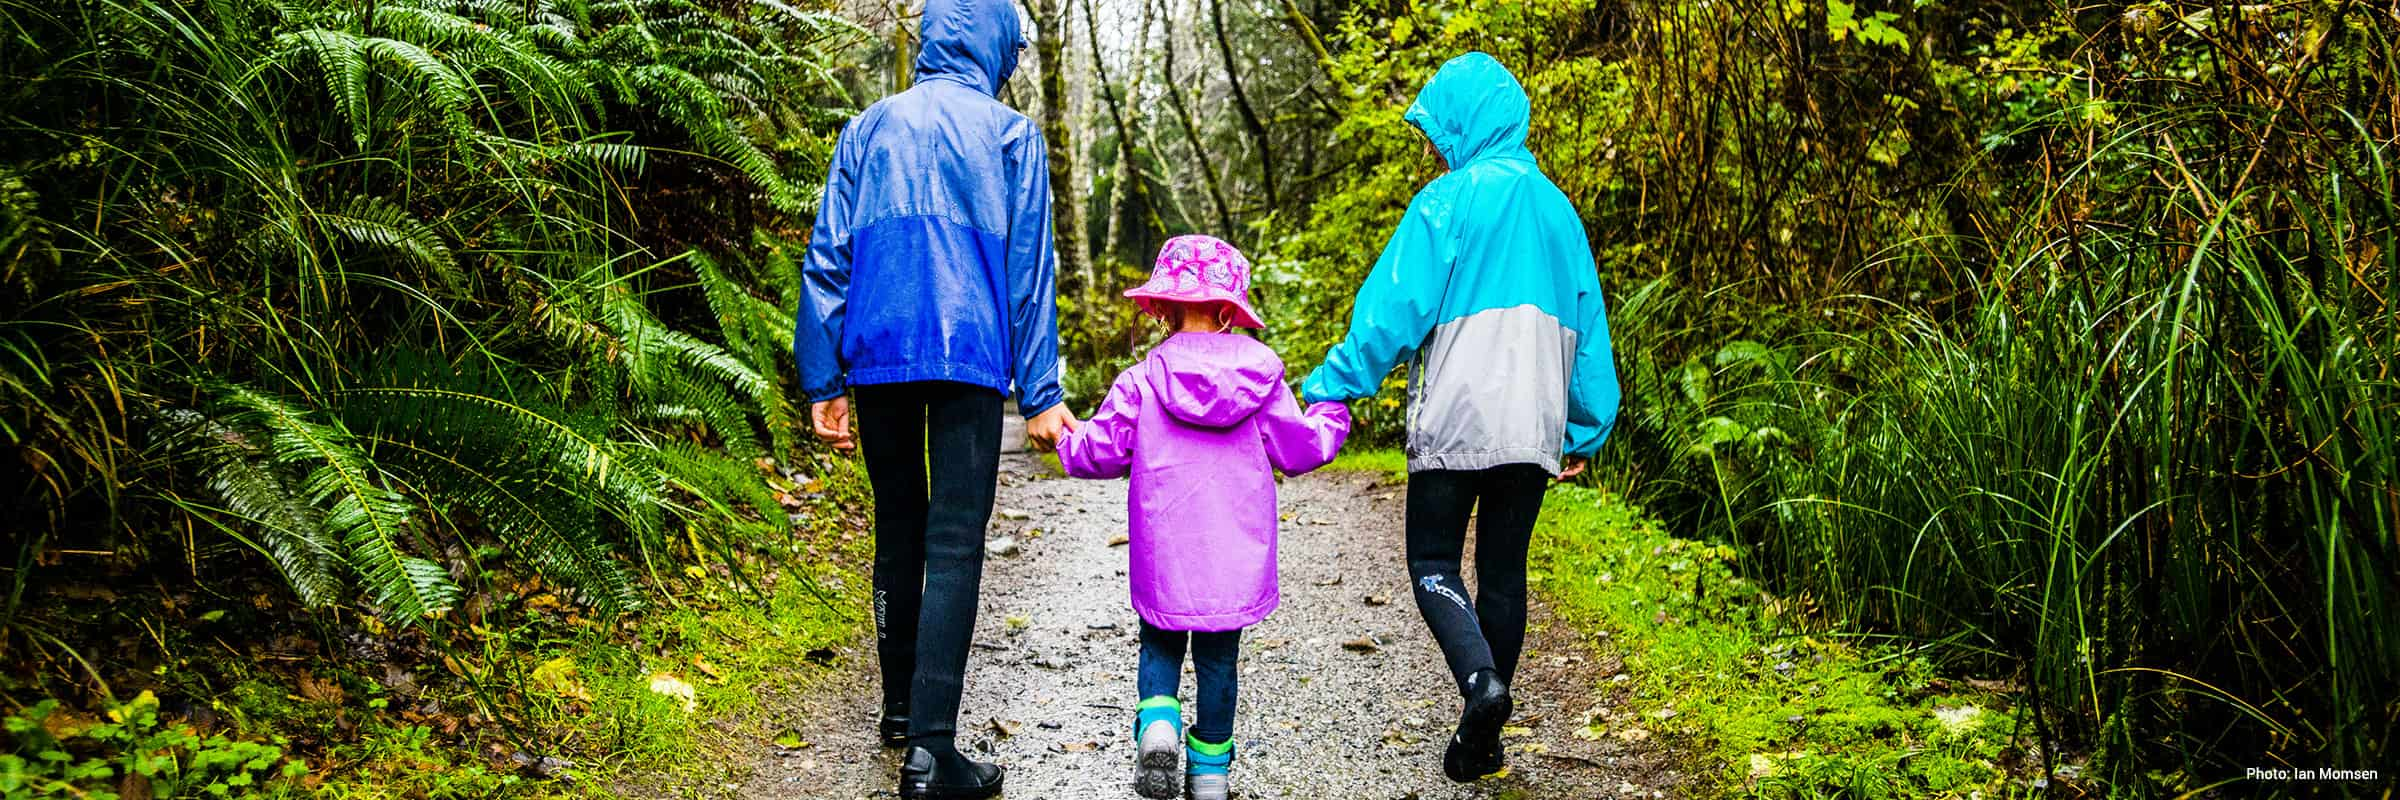 Columbia, Helly Hansen, The North Face. Top Waterproof Raincoats for Kids